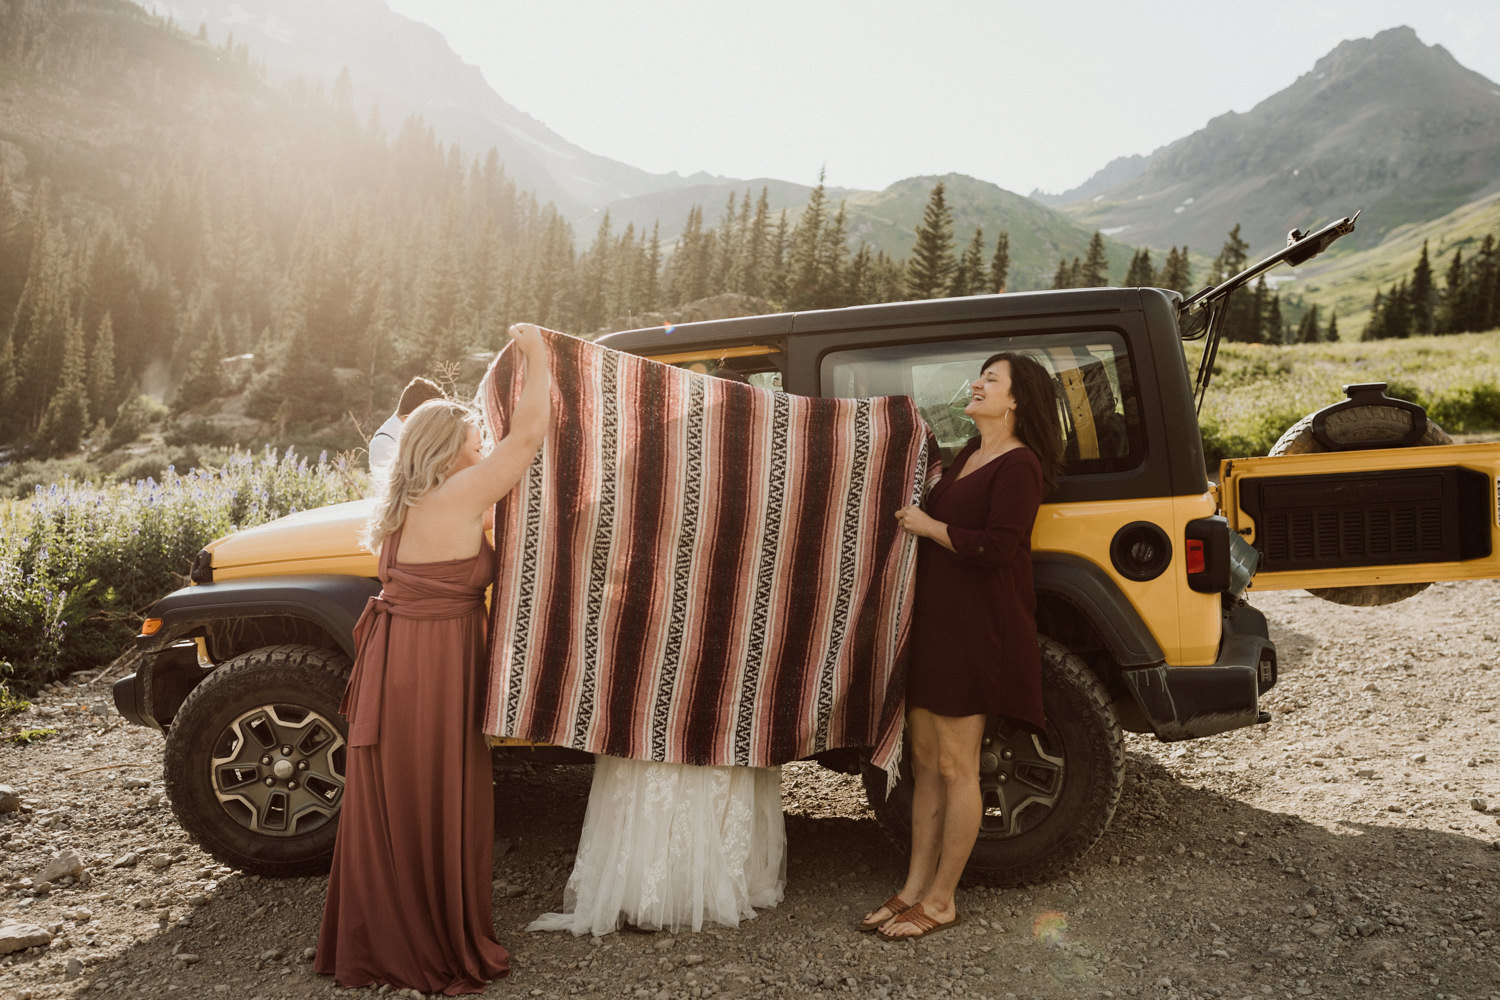 02_ouray-jeeping-elopement-2.jpg